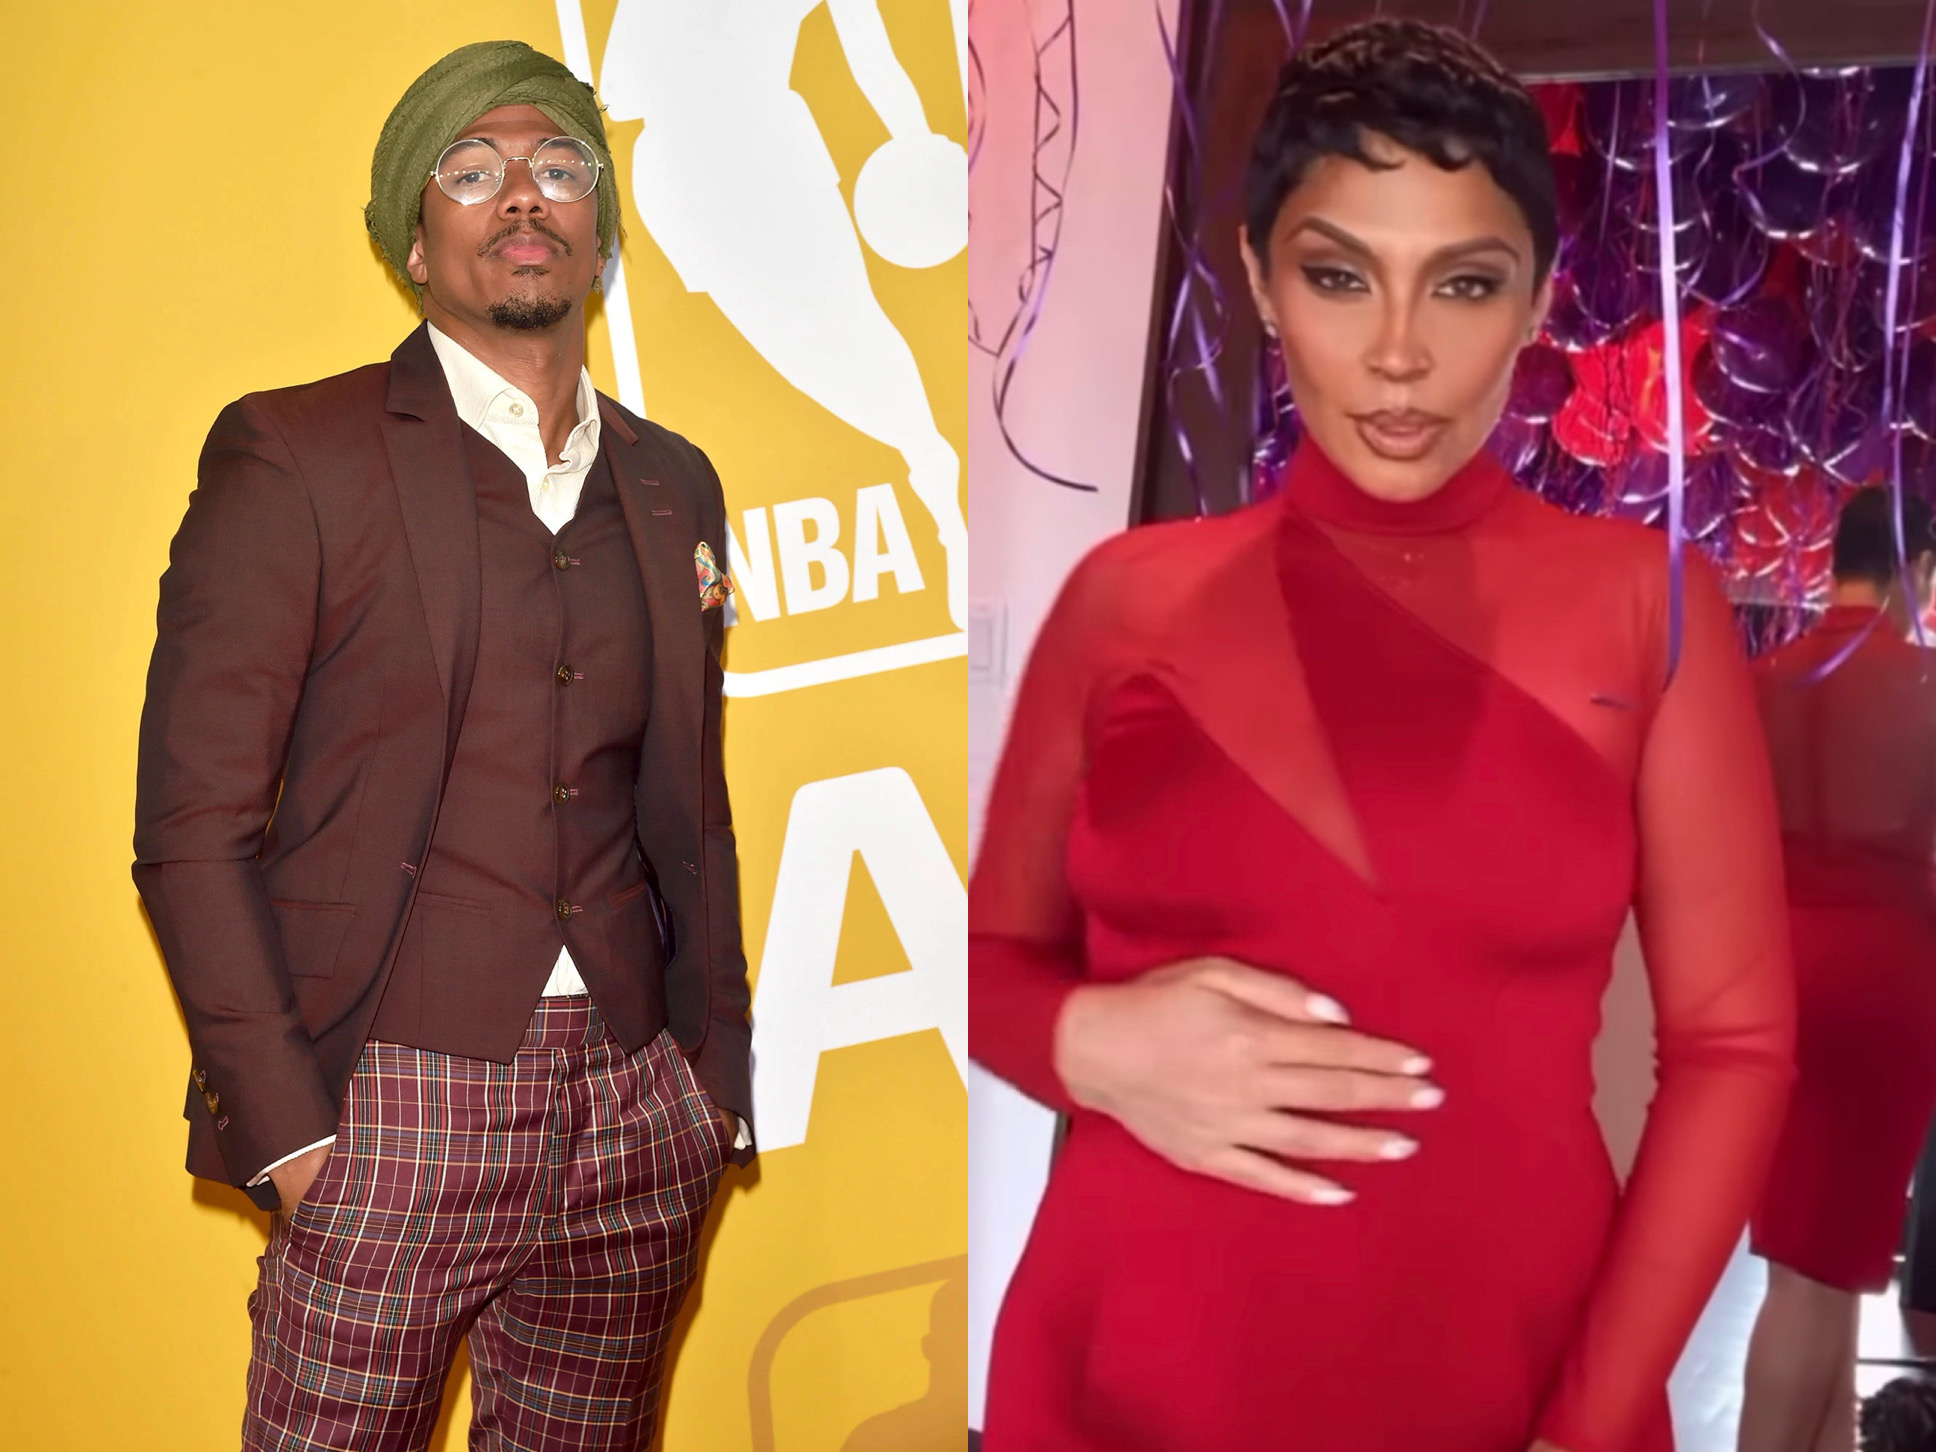 Nick Cannon Expecting Baby With Ashley DeLa Rosa